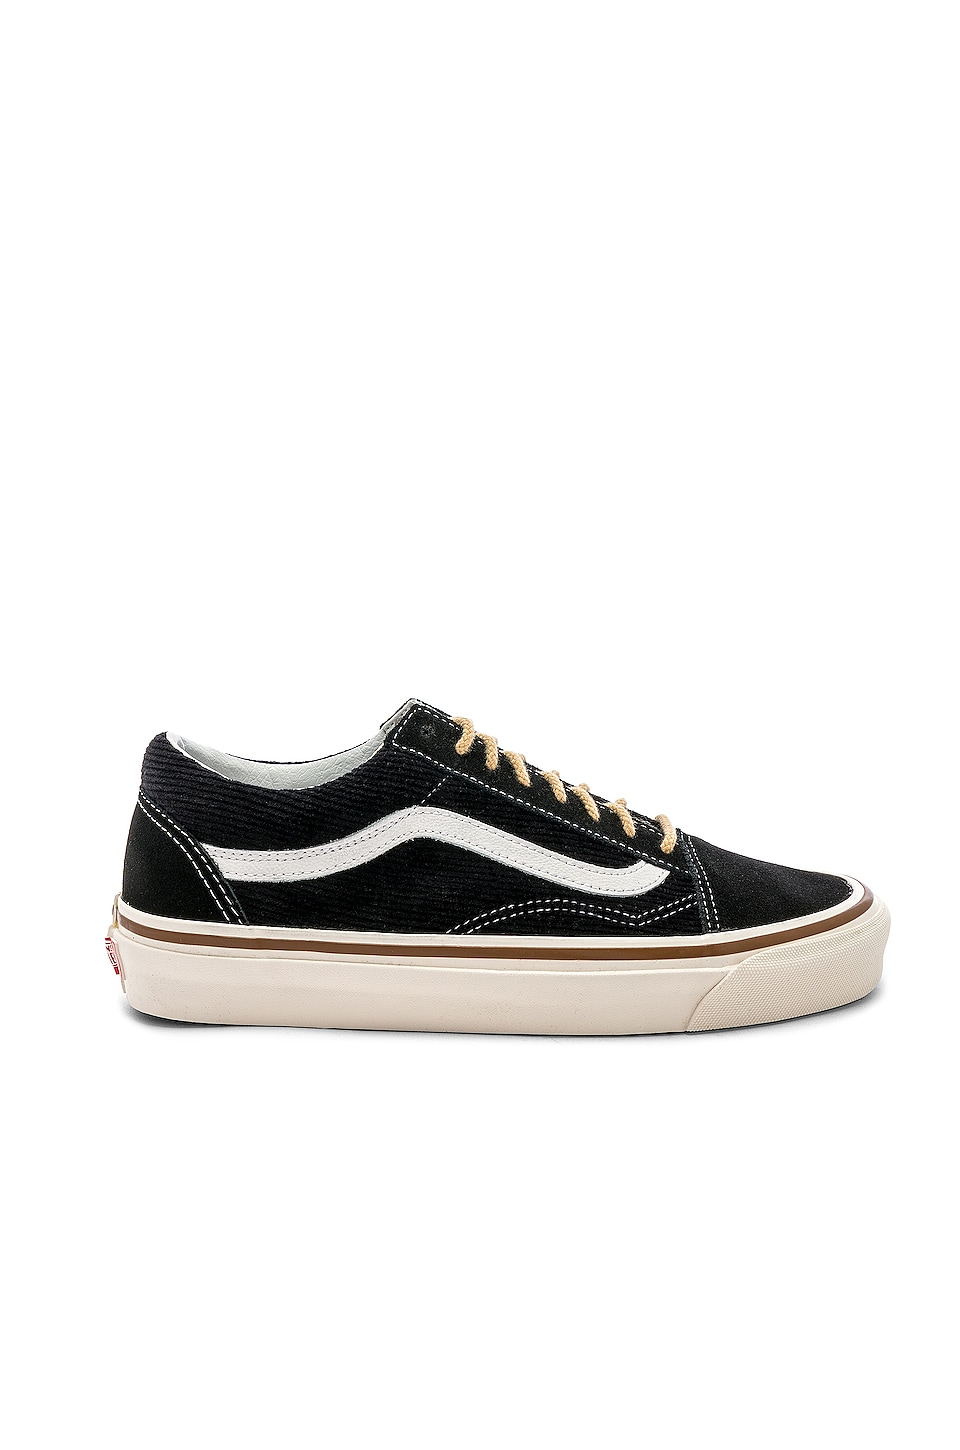 Vans Old Skool 36 DX in OG Black & Suede & Corduroy